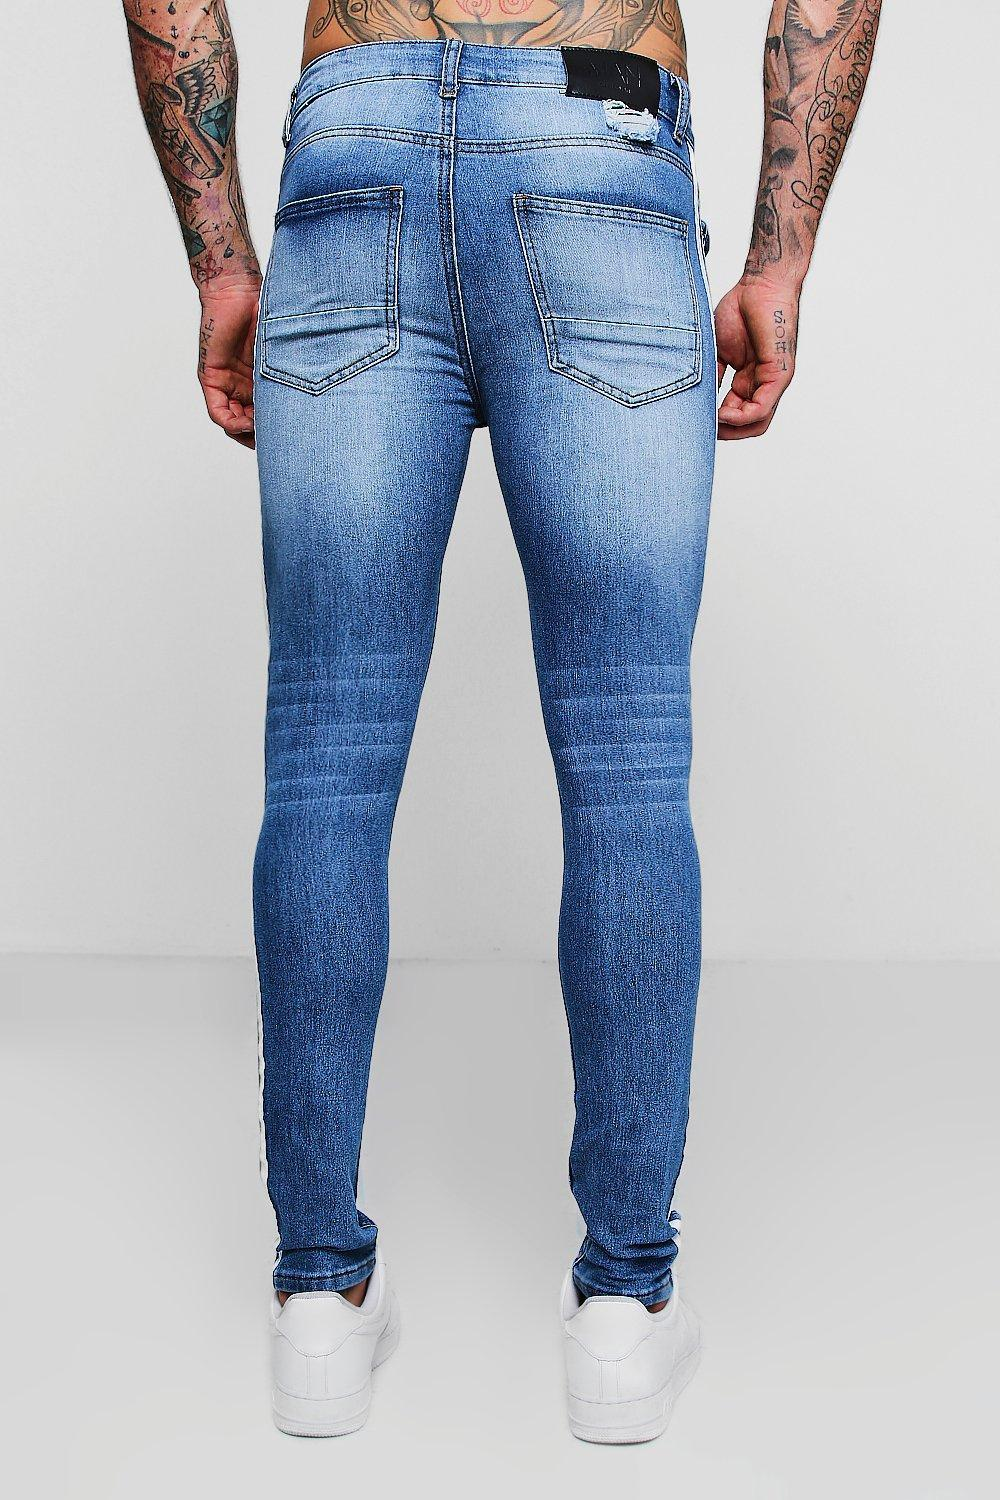 52036776ccf67 ... Skinny Distressed Jeans With Side Tape for Men - Lyst. Visit boohooman.  Tap to visit site